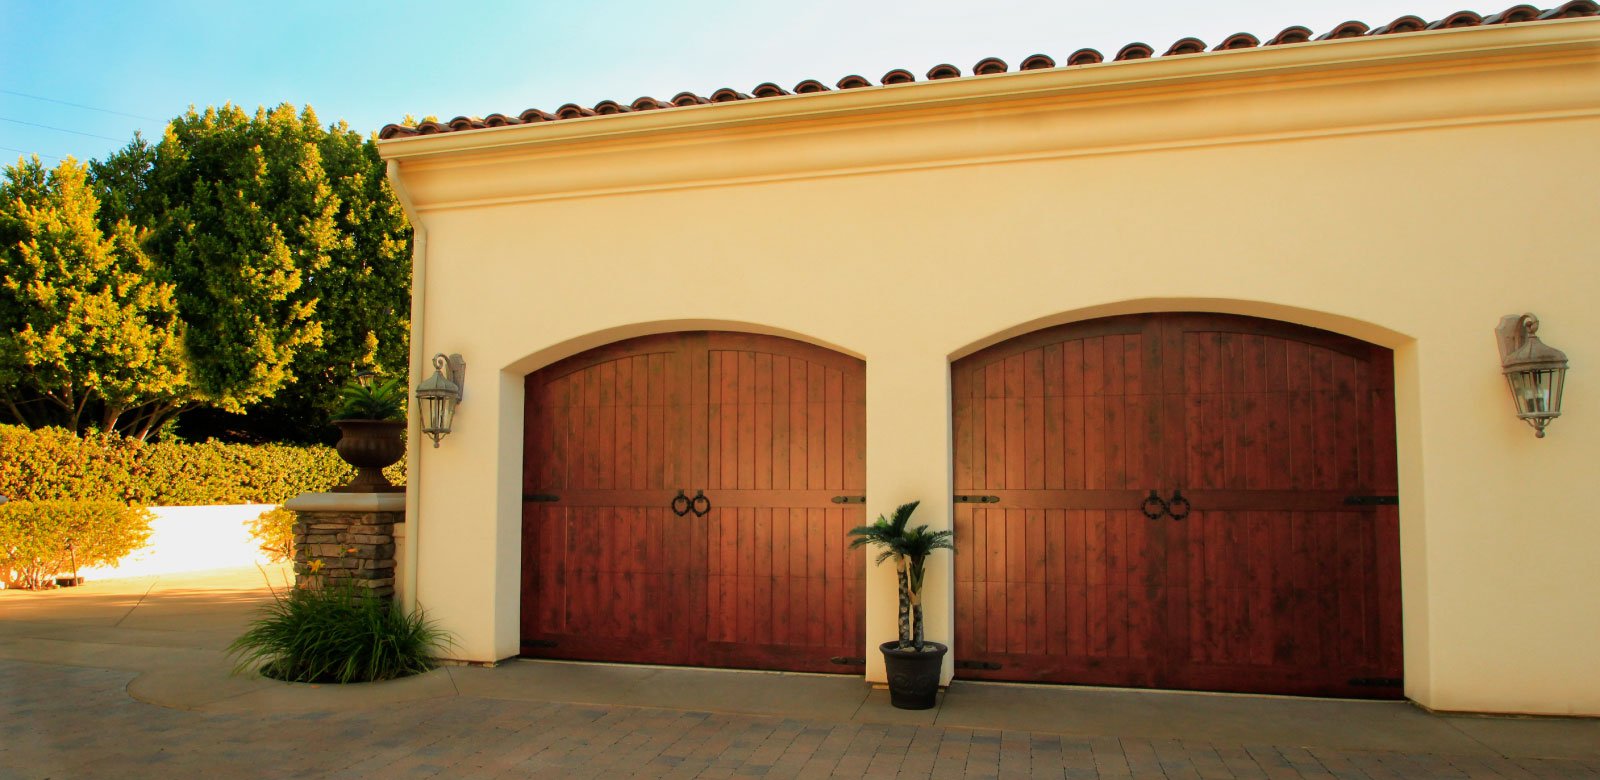 Garage doors unlimited gdu garage doors san diego for 2 door garage door